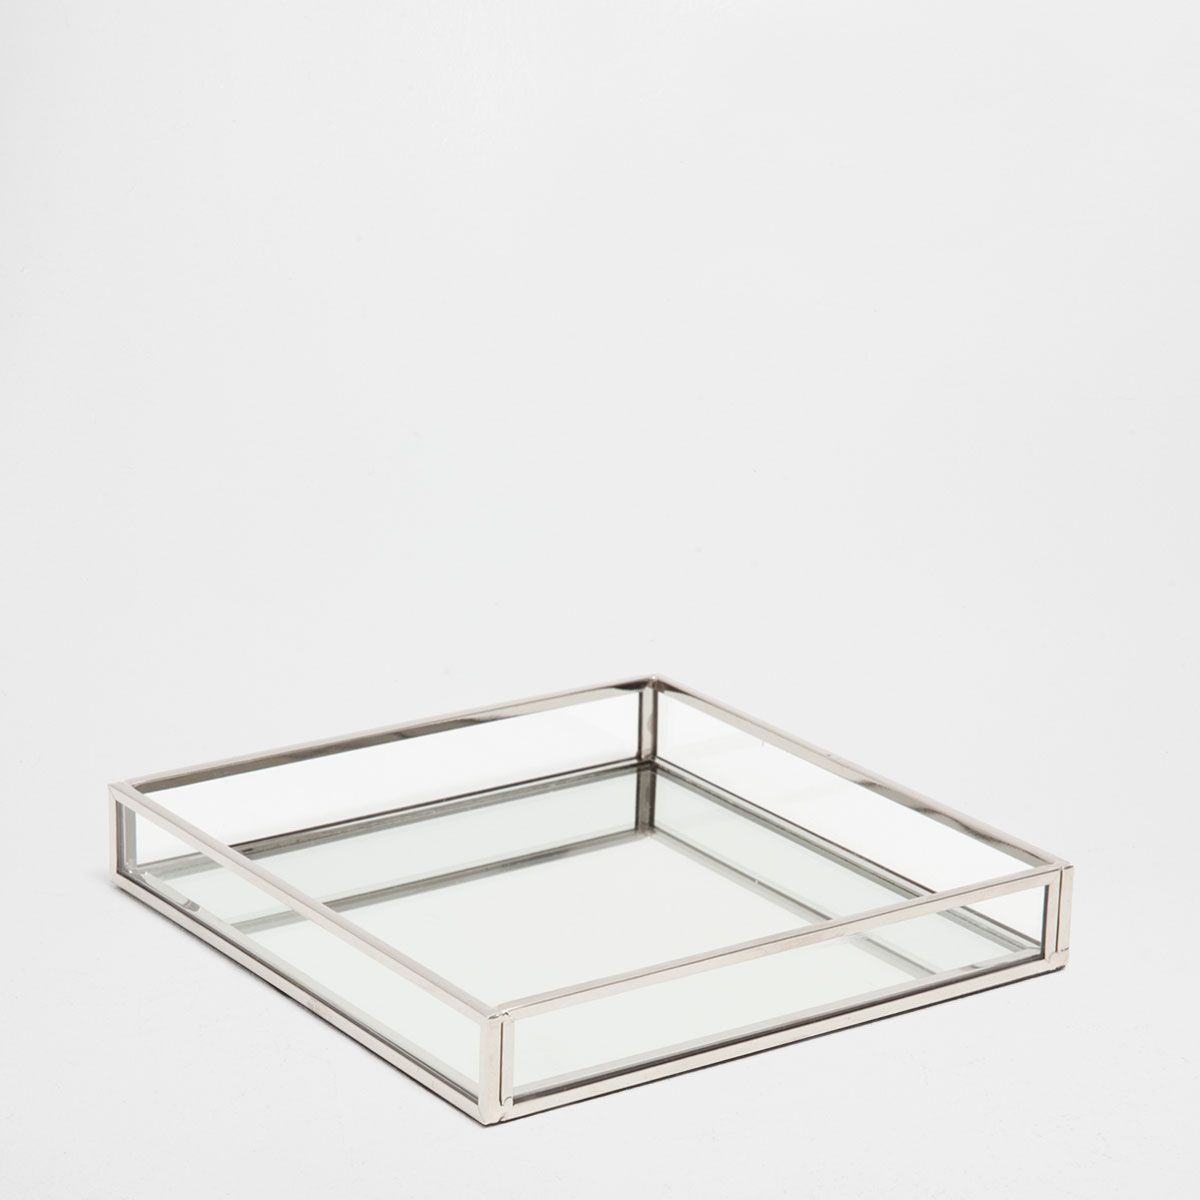 Decorative Tray Interesting Image 1 Of The Product Silver Metal Mirror Decorative Tray  New Inspiration